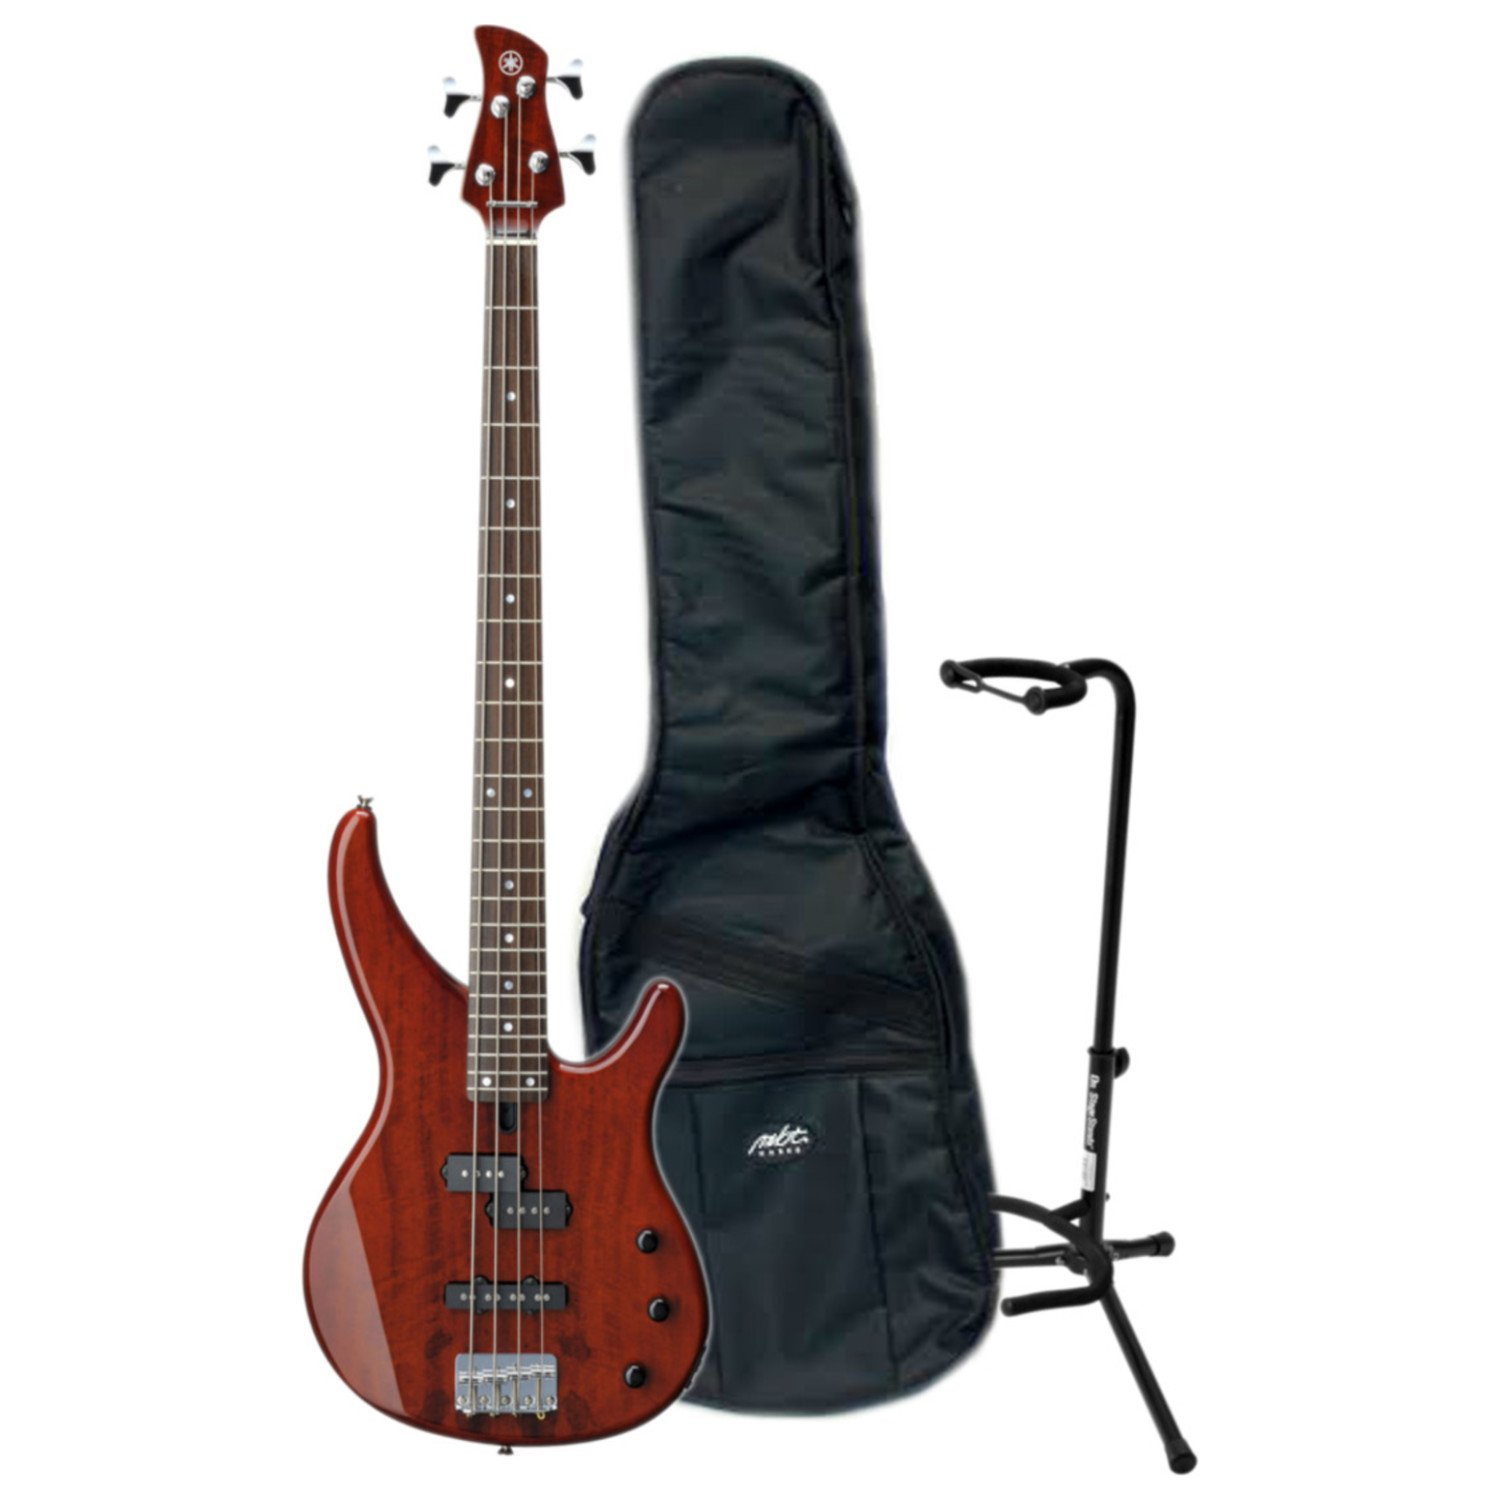 Yamaha TRBX174EW RTB ELECTRIC BASS (ROOT BEER) w/ Gig Bag and Stand